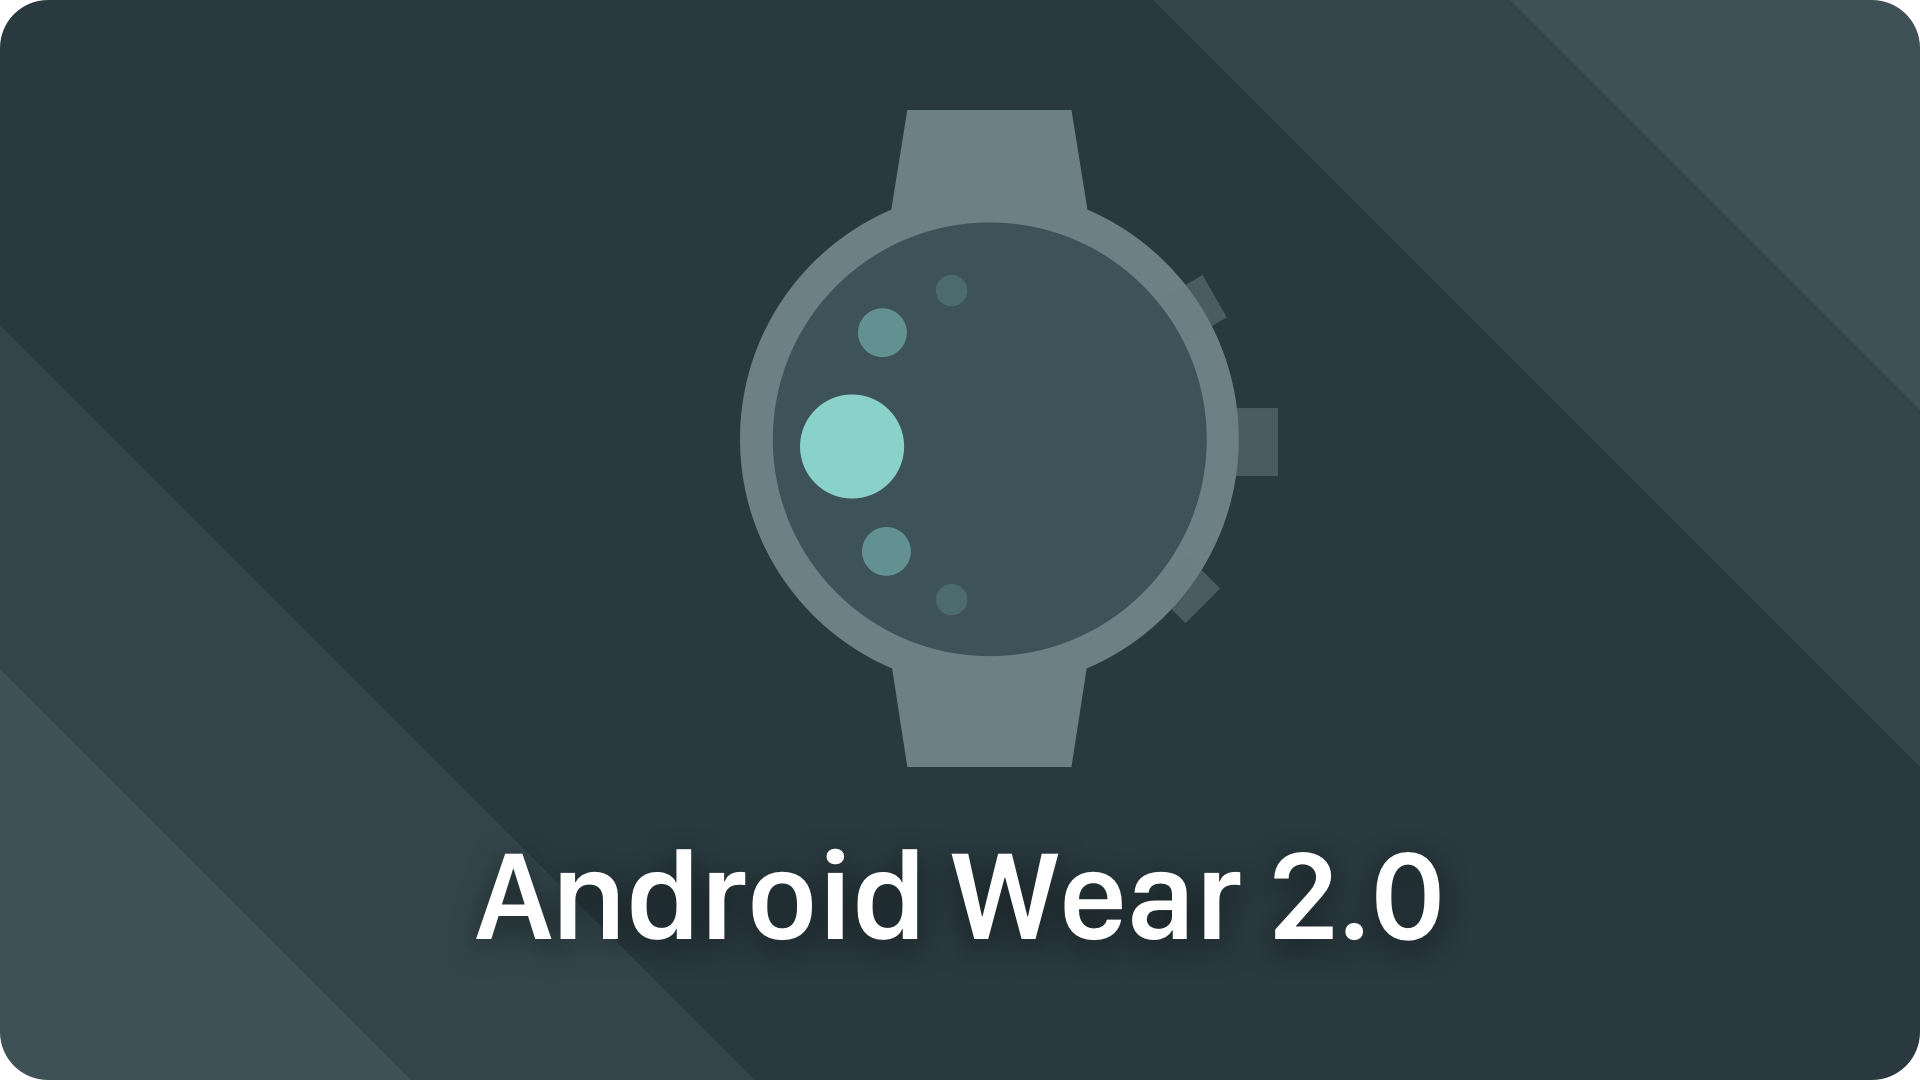 Android Wear 2 0 Everything You Need To Know To Design Apps For Wearables Uxmisfit Com